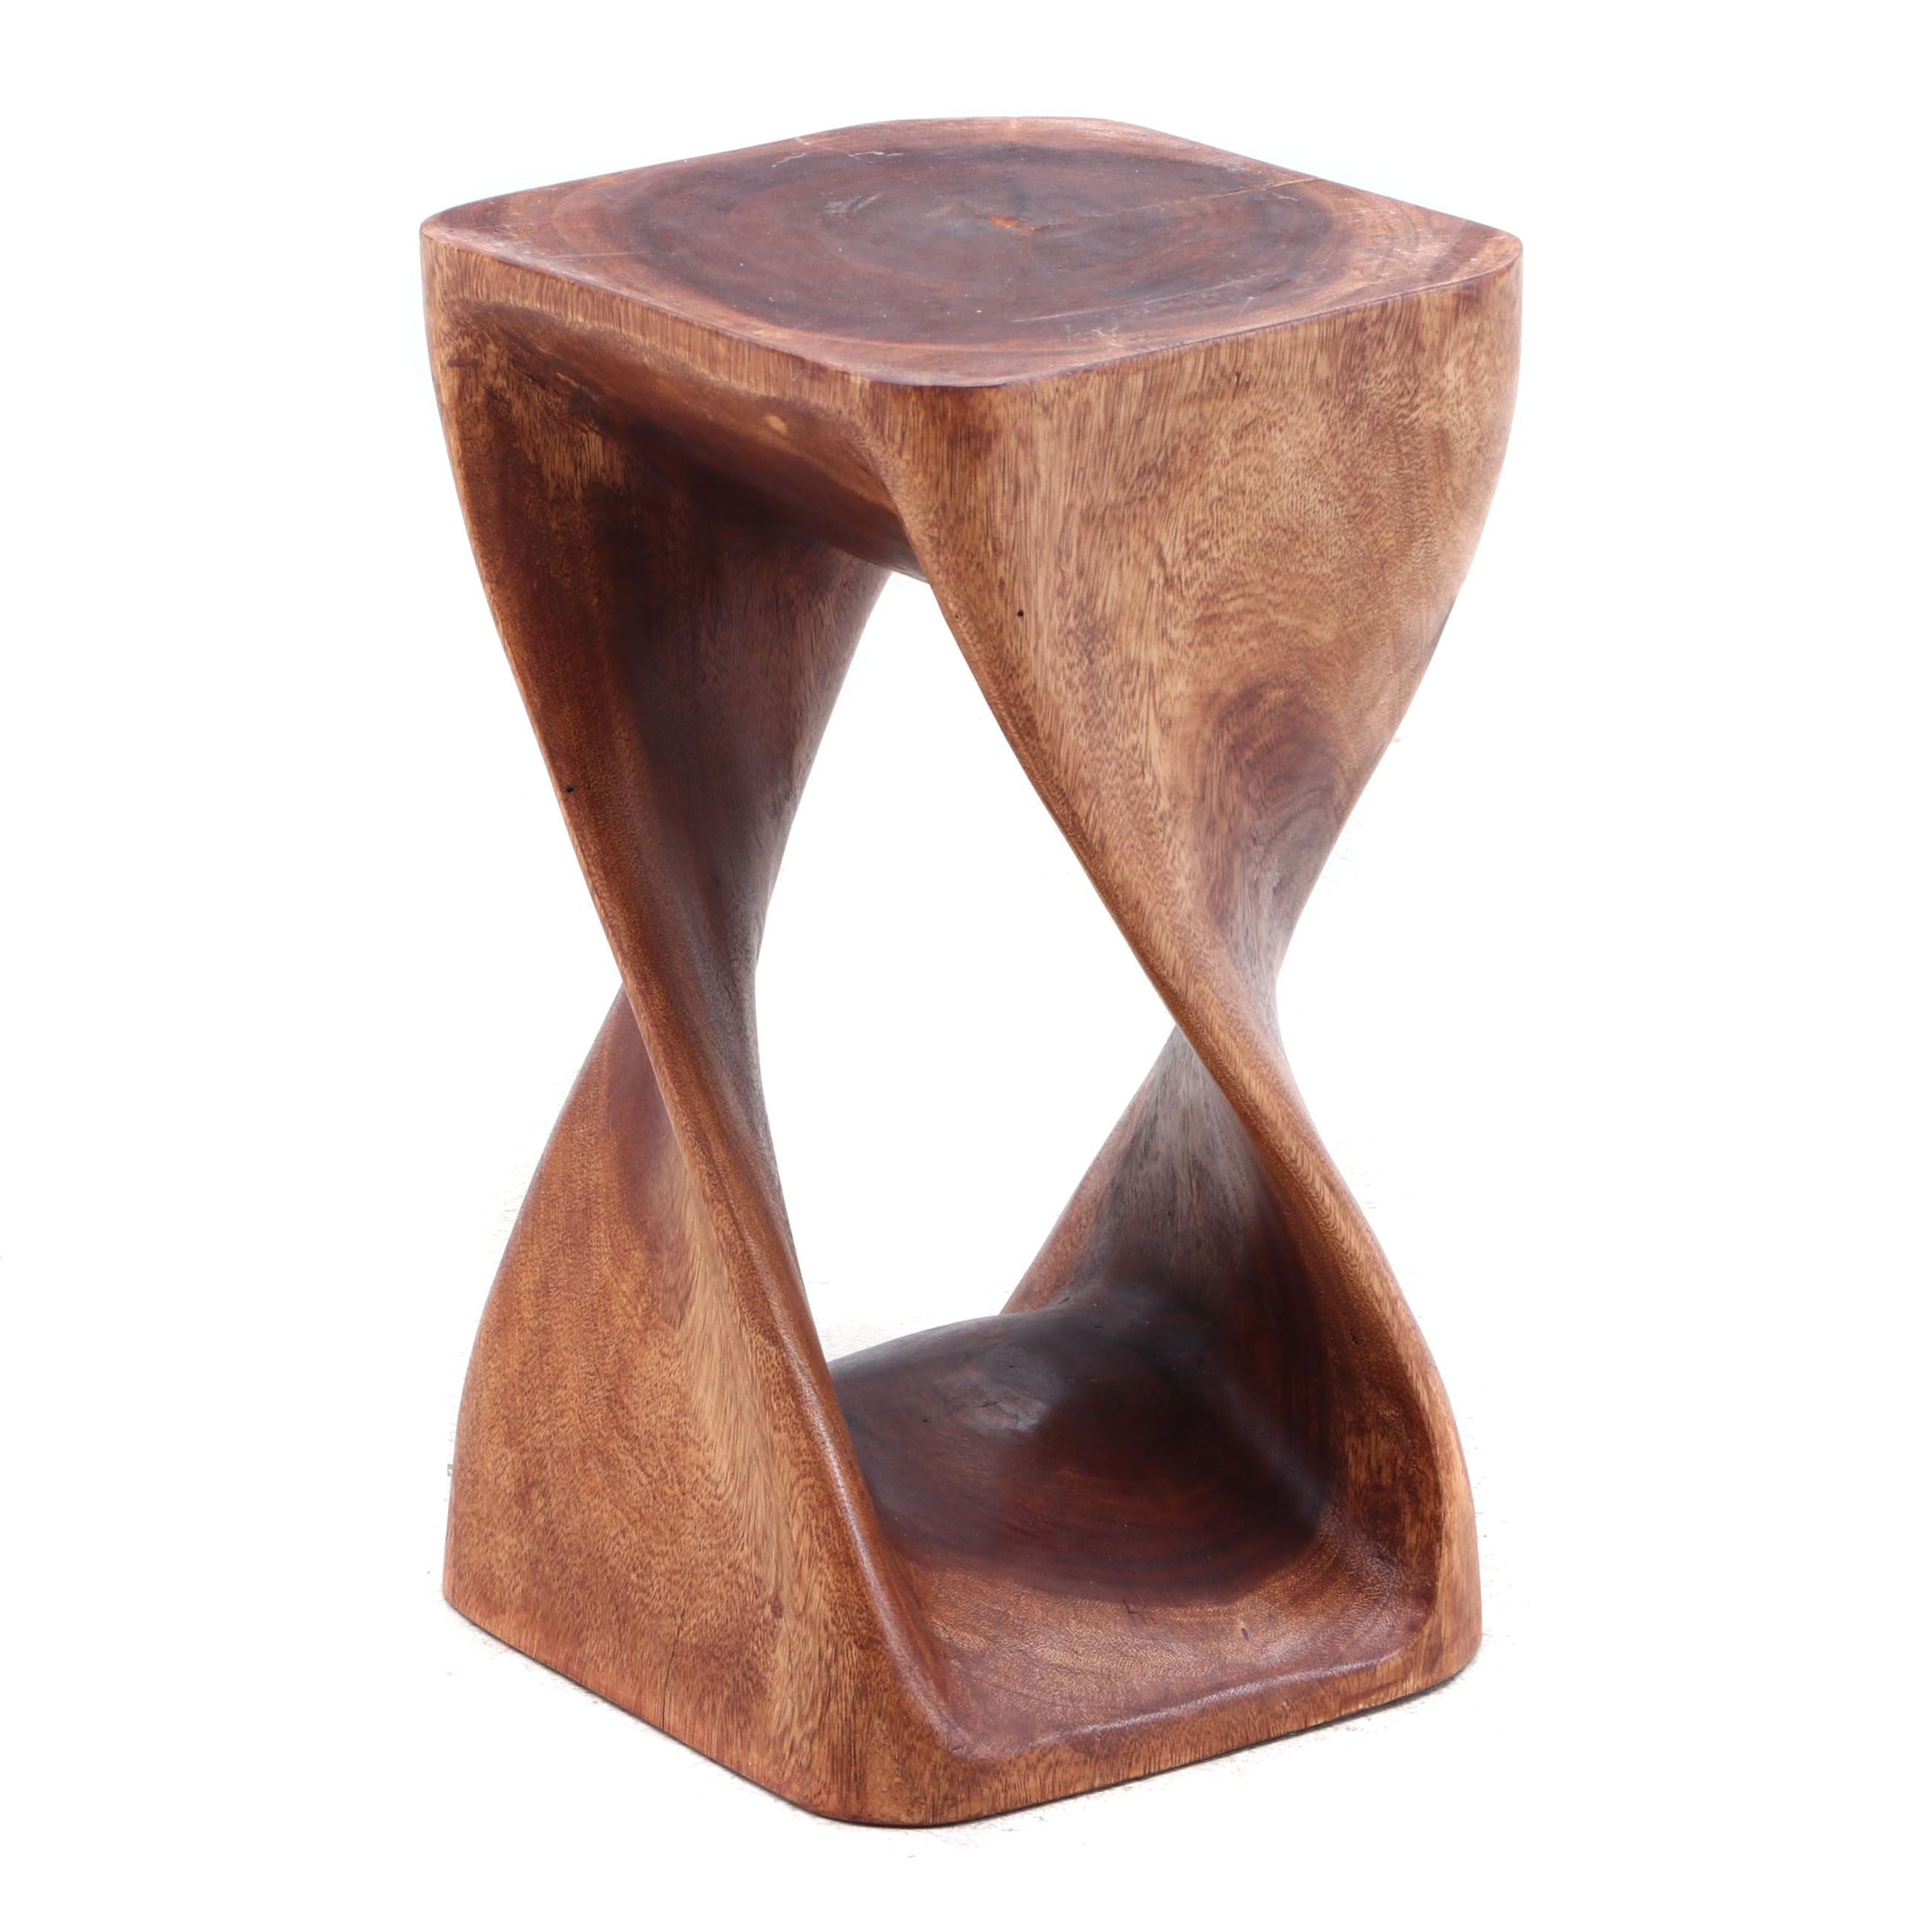 Modernist Carved Walnut Stool, Contemporary